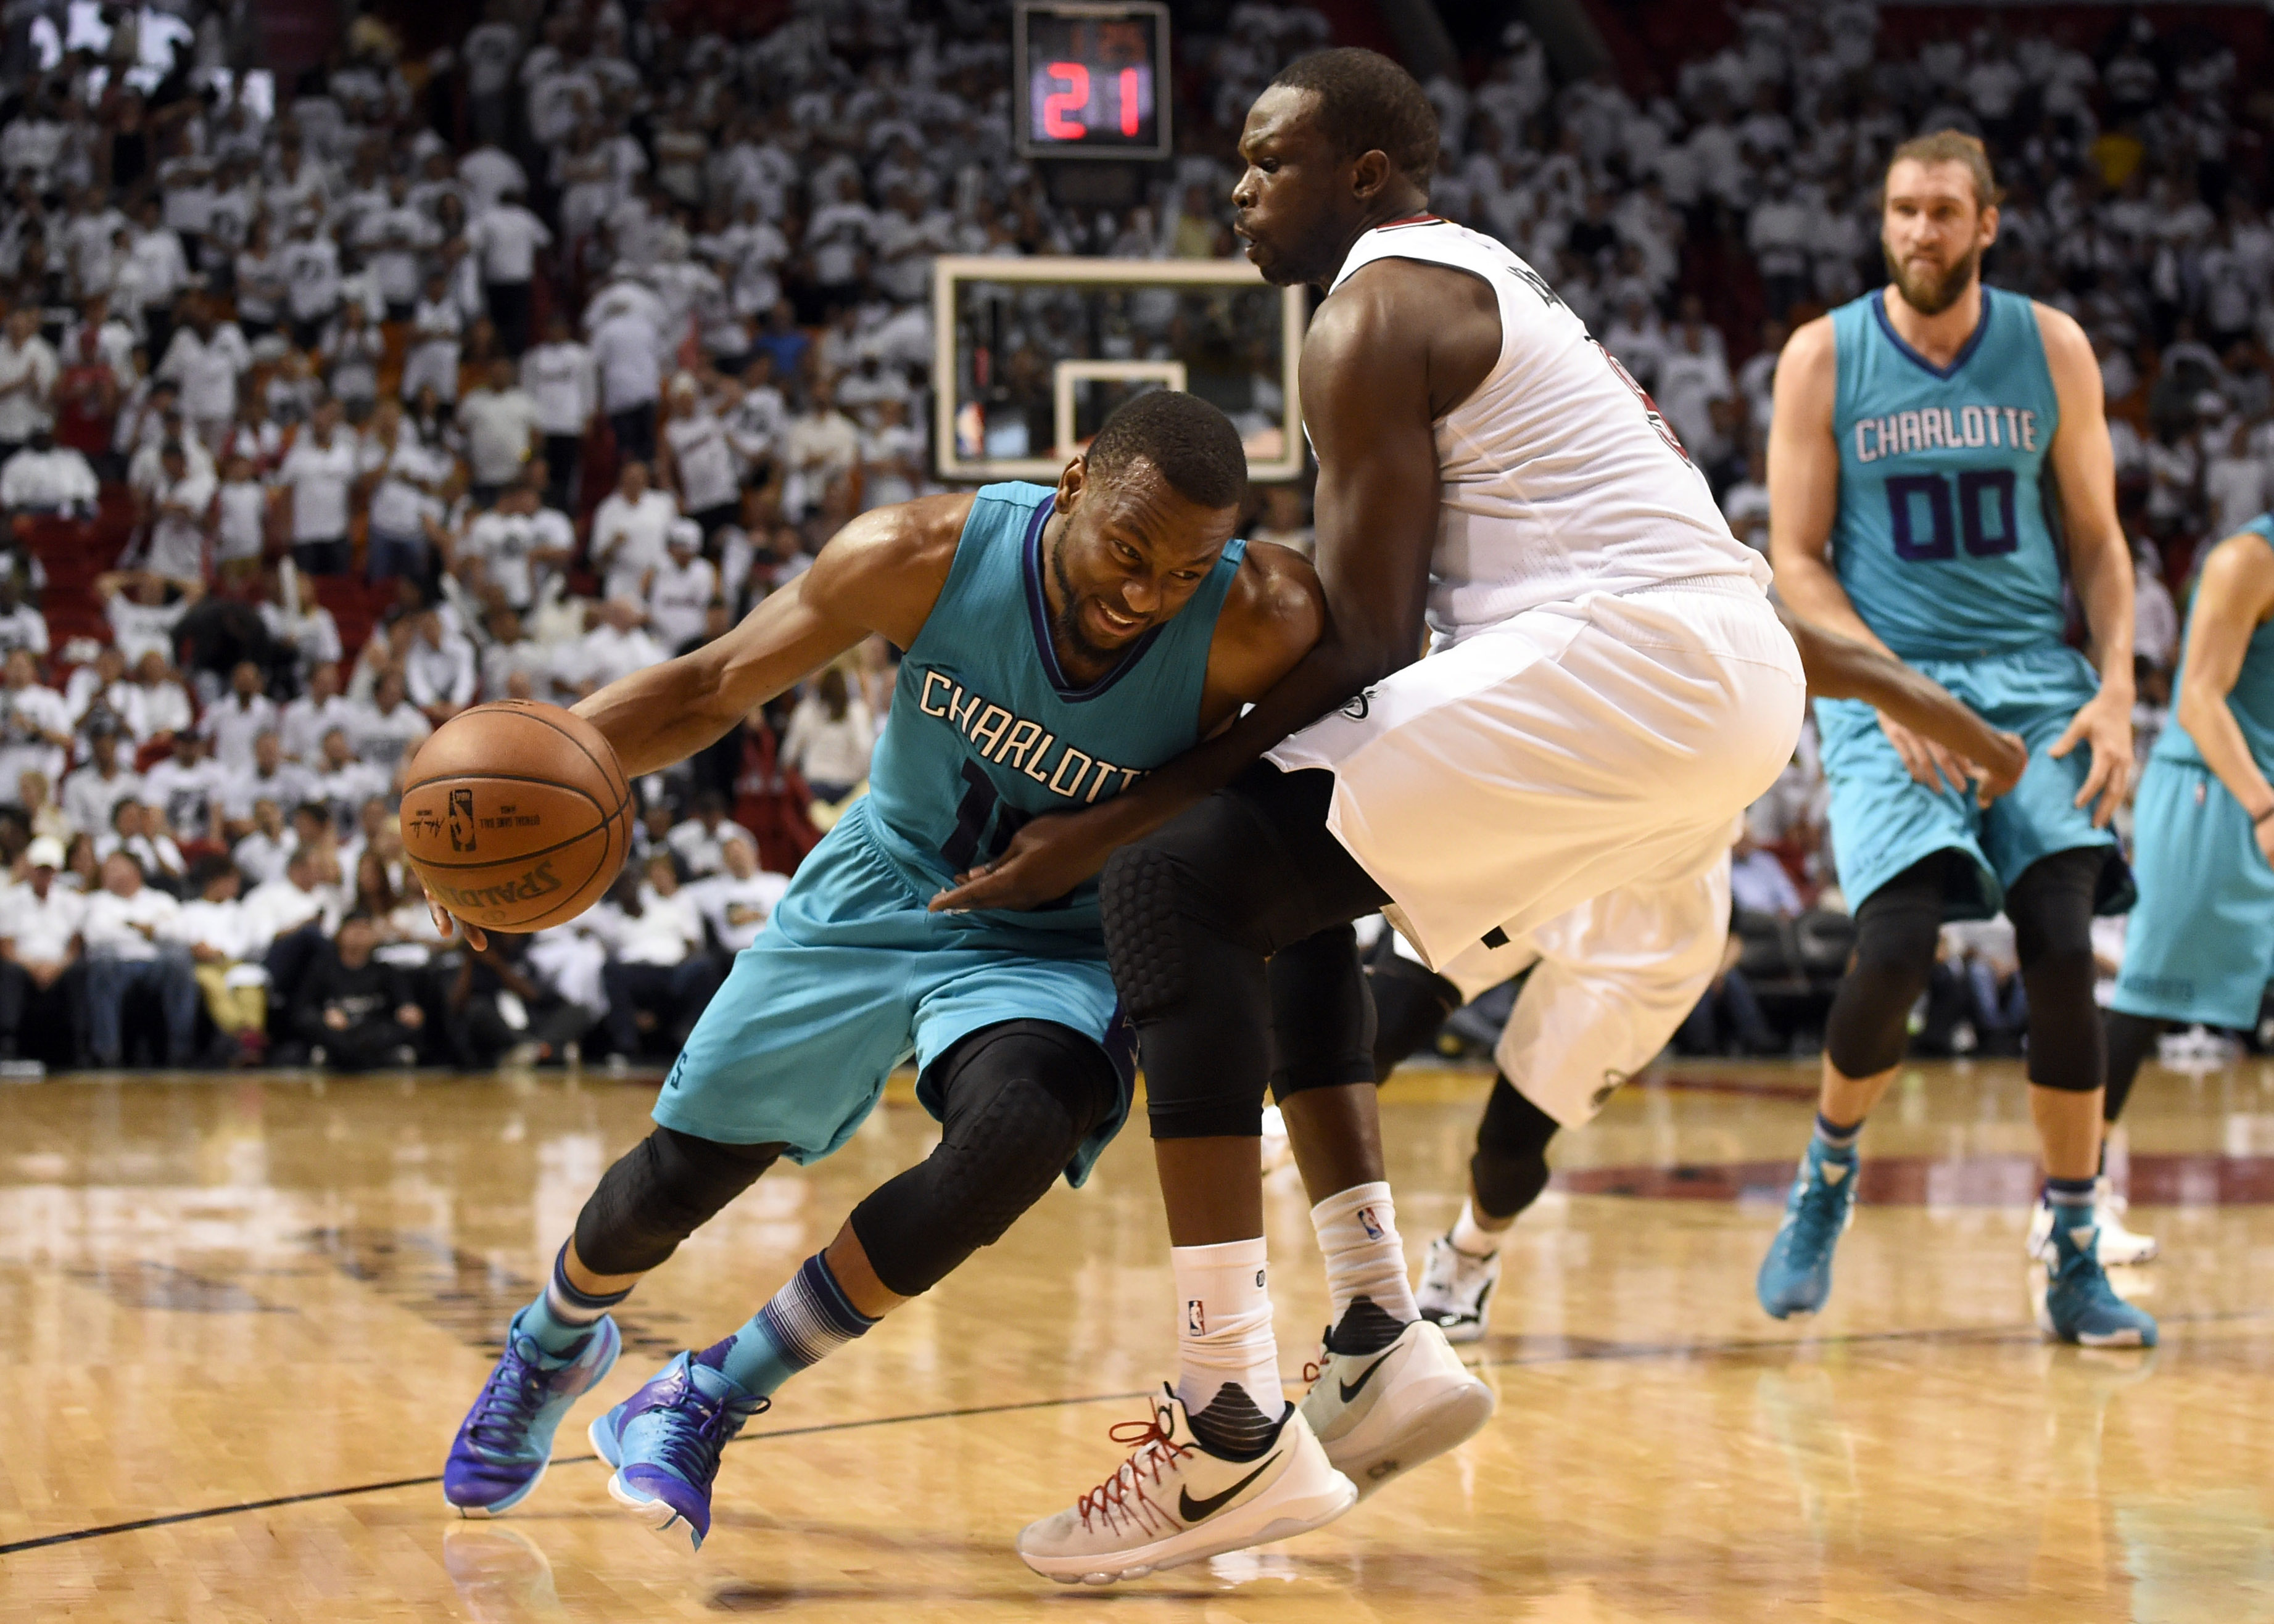 Miami Heat vs. Charlotte Hornets - Mandatory Credit: Steve Mitchell-USA TODAY Sports